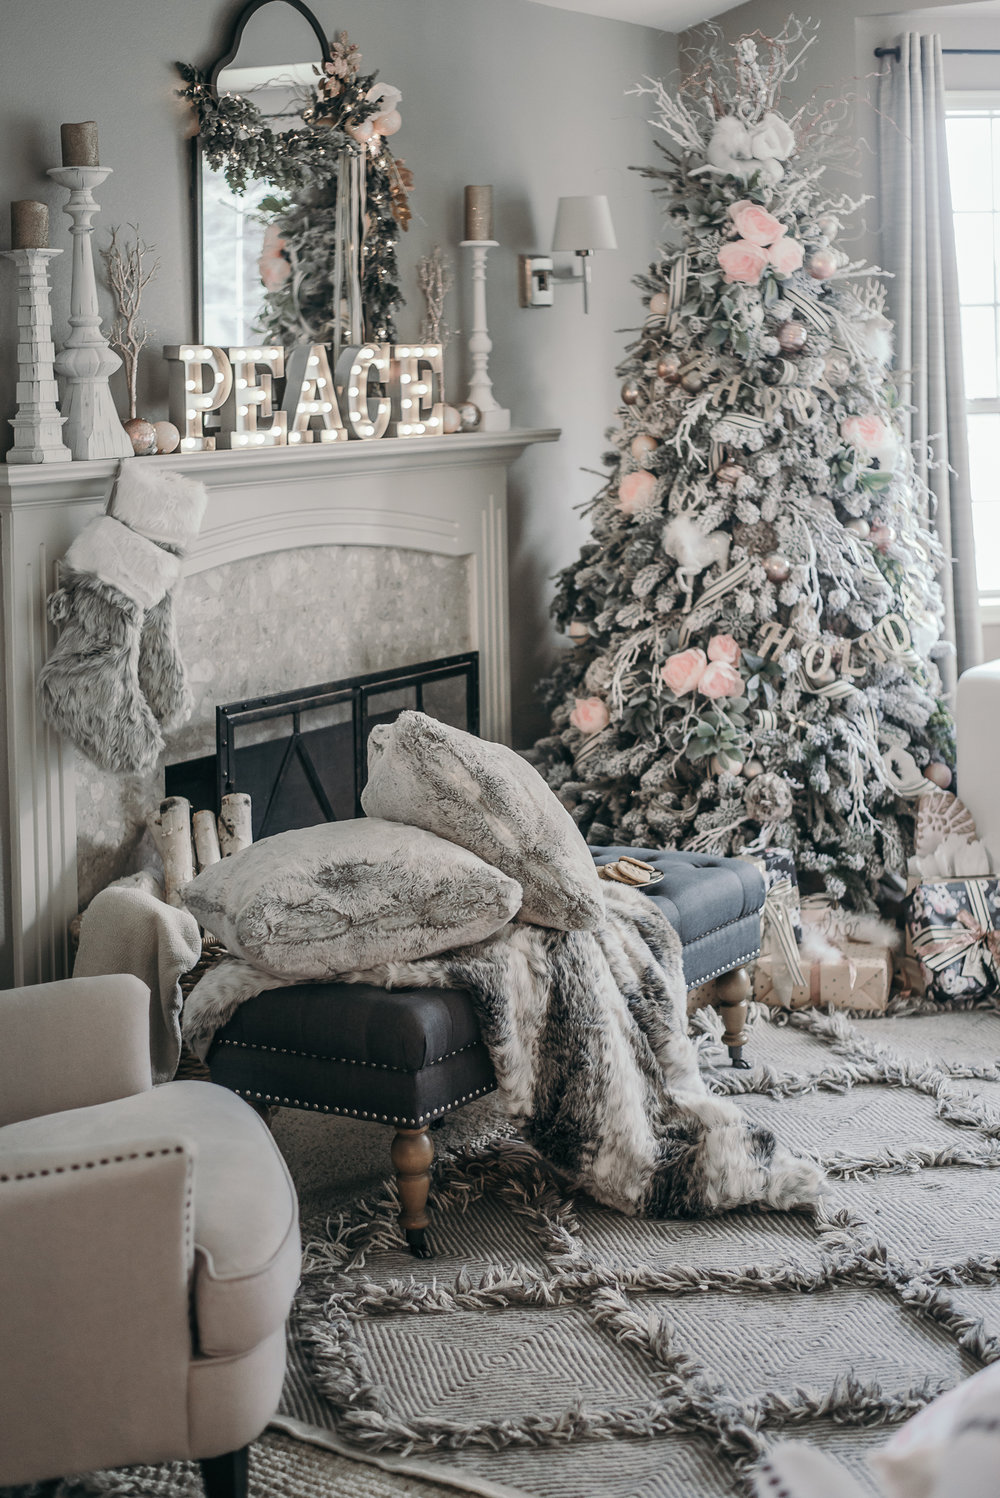 Holiday Home Decor Ideas Part - 45: Christmas Decor Ideas - House Of Five